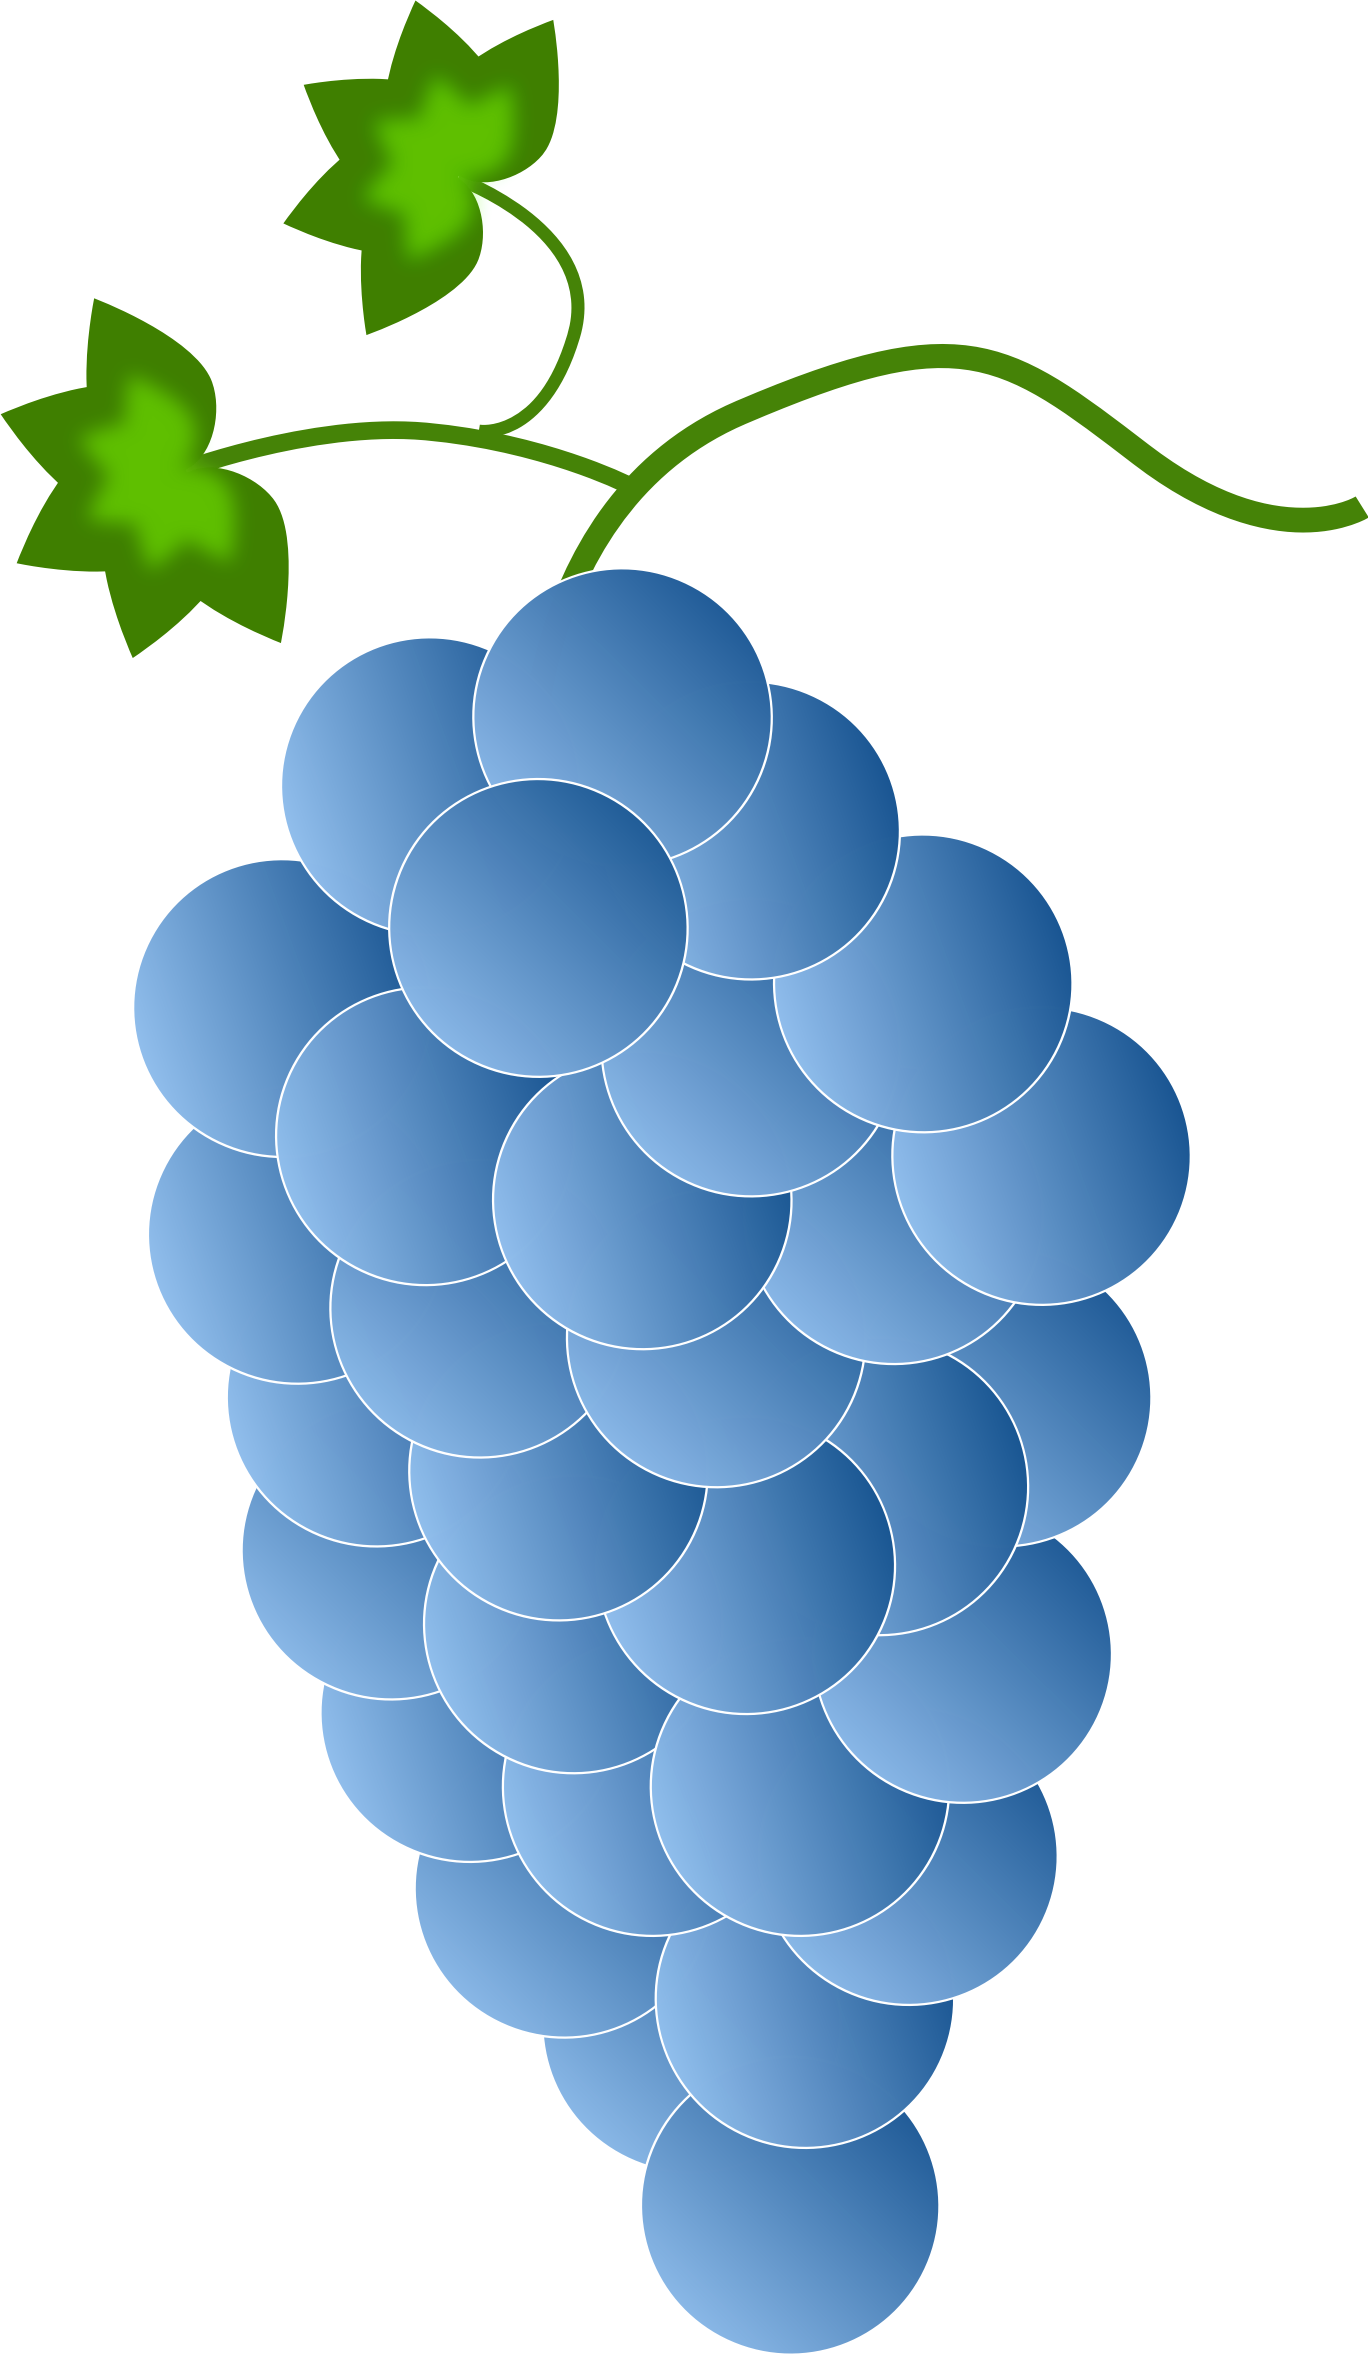 blue grapes by Astro